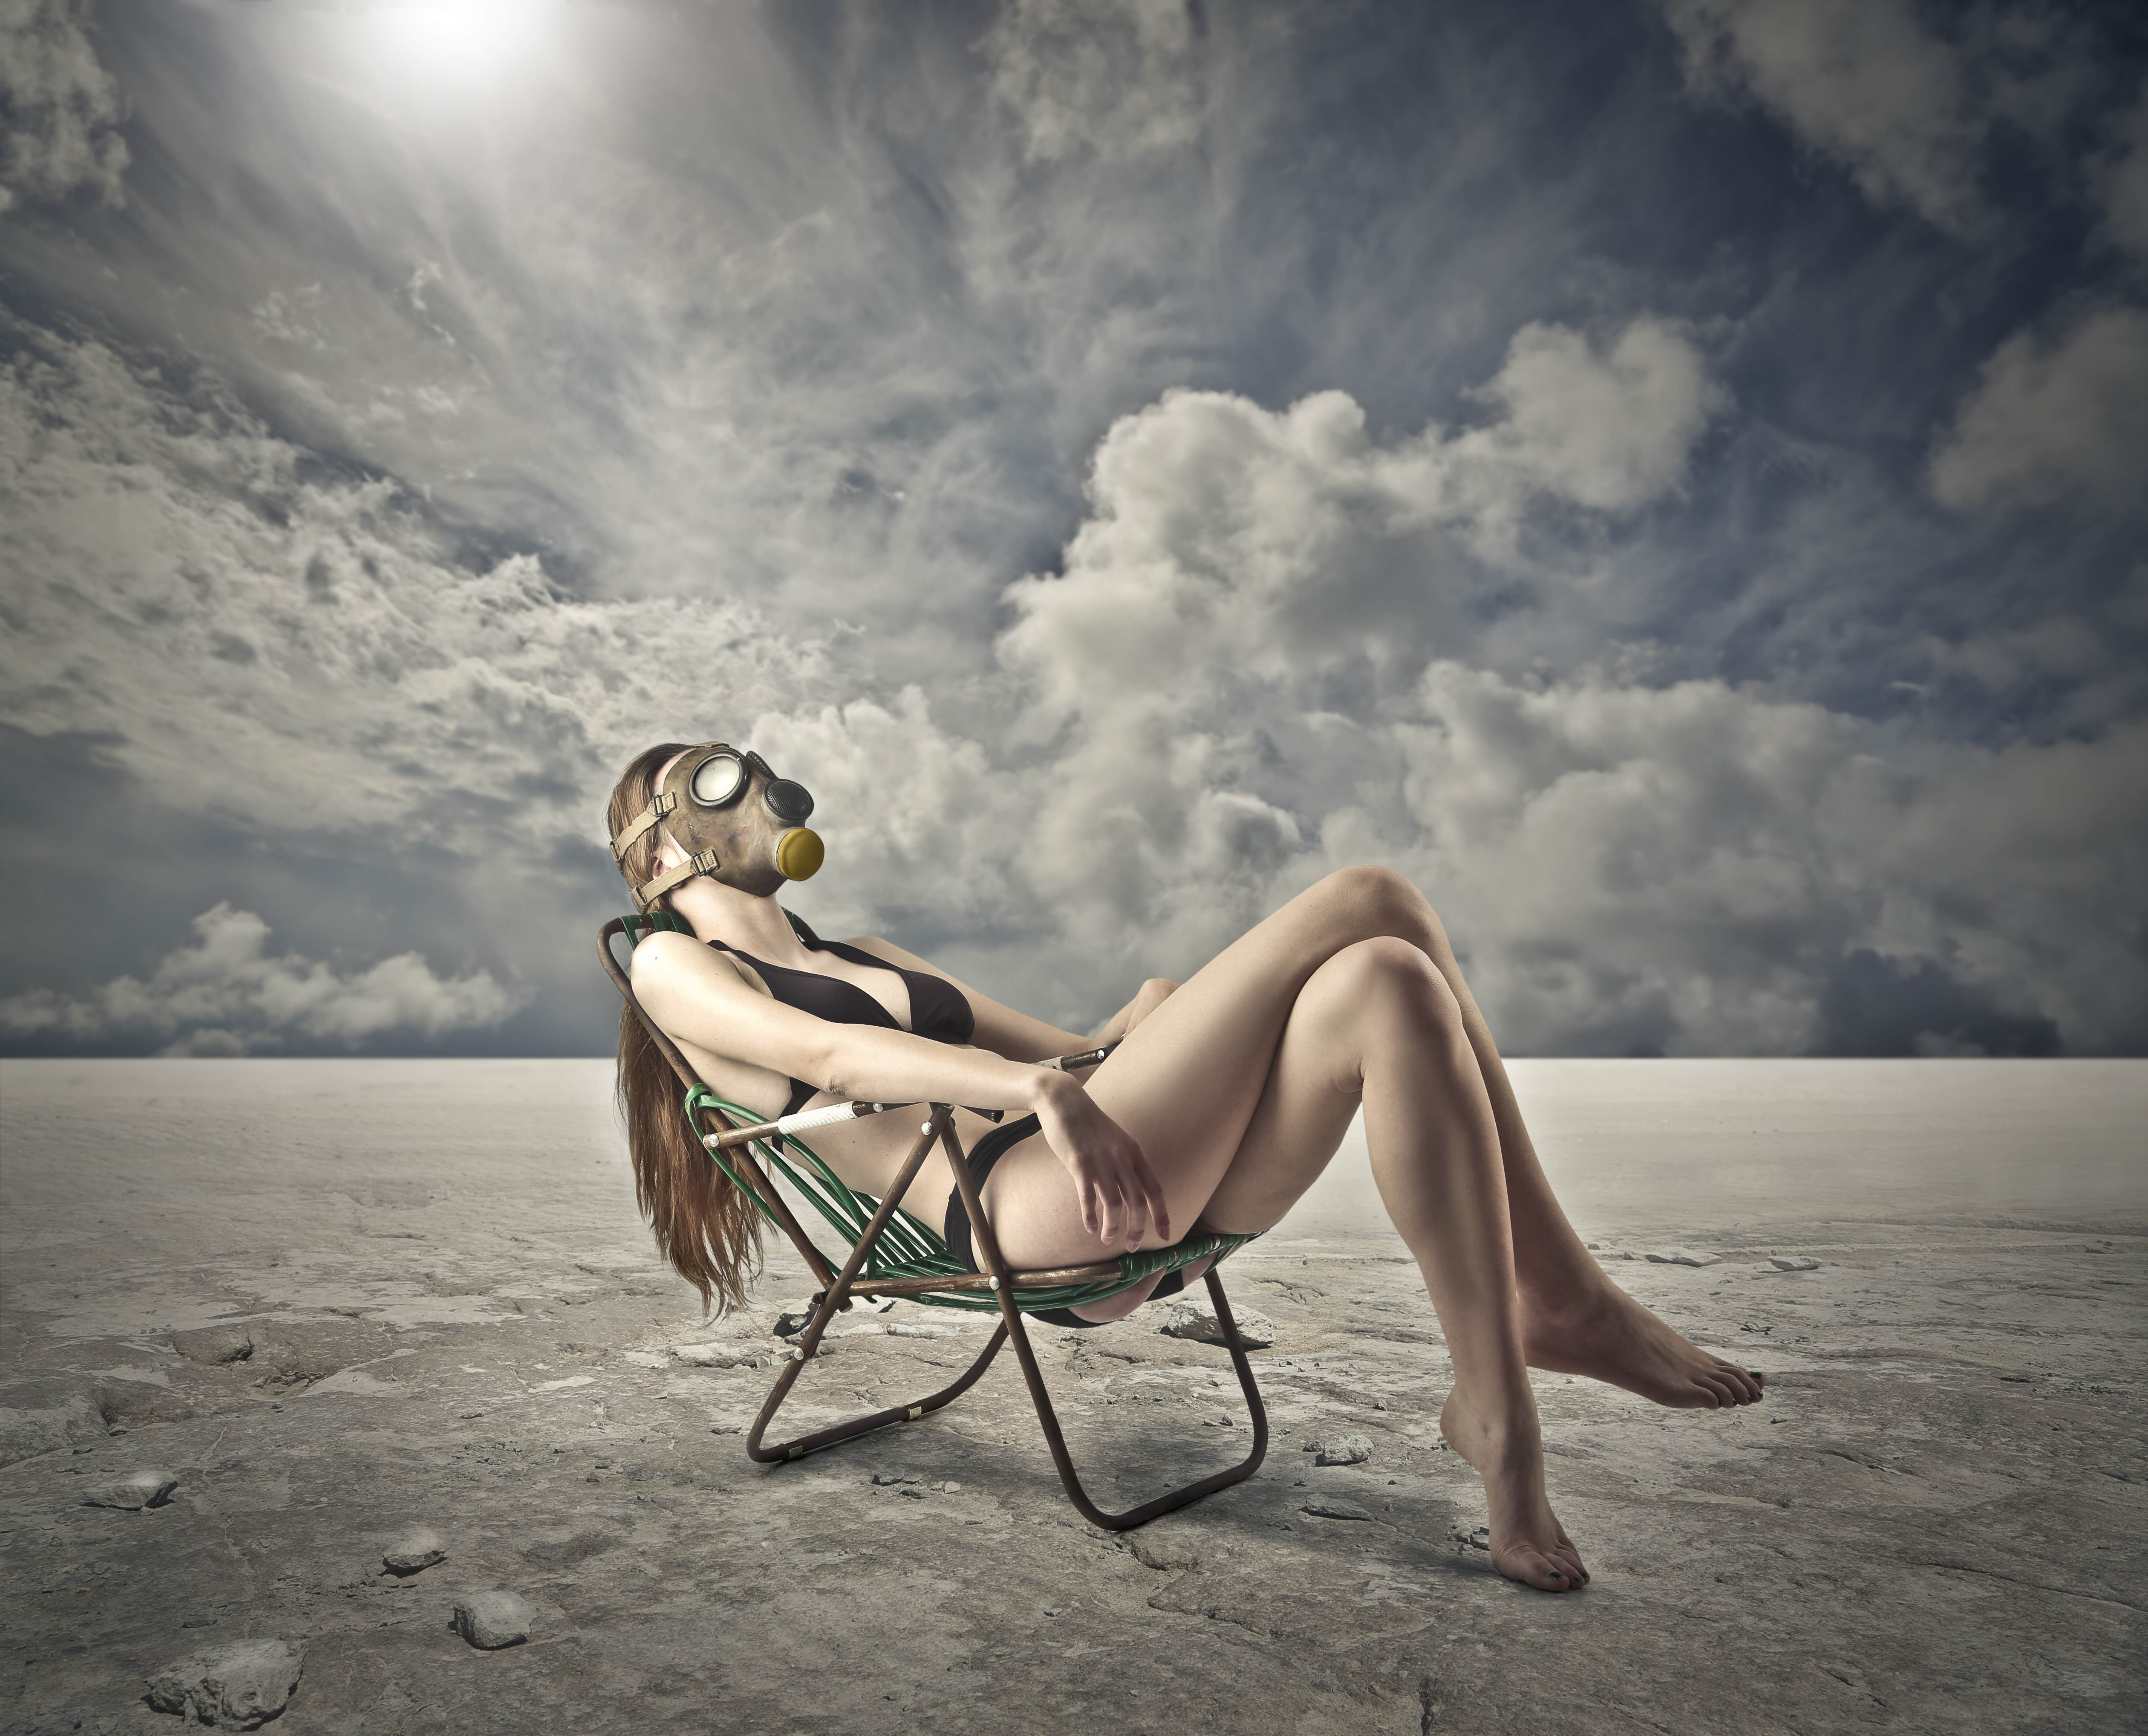 Young female wearing a black bikini and a gas mask, sitting in a deckchair sunbathing in a polluted environment where the skin is exposed to numerous pollutants that damage cells which can be protected with Croda's diverse ingredients ranges